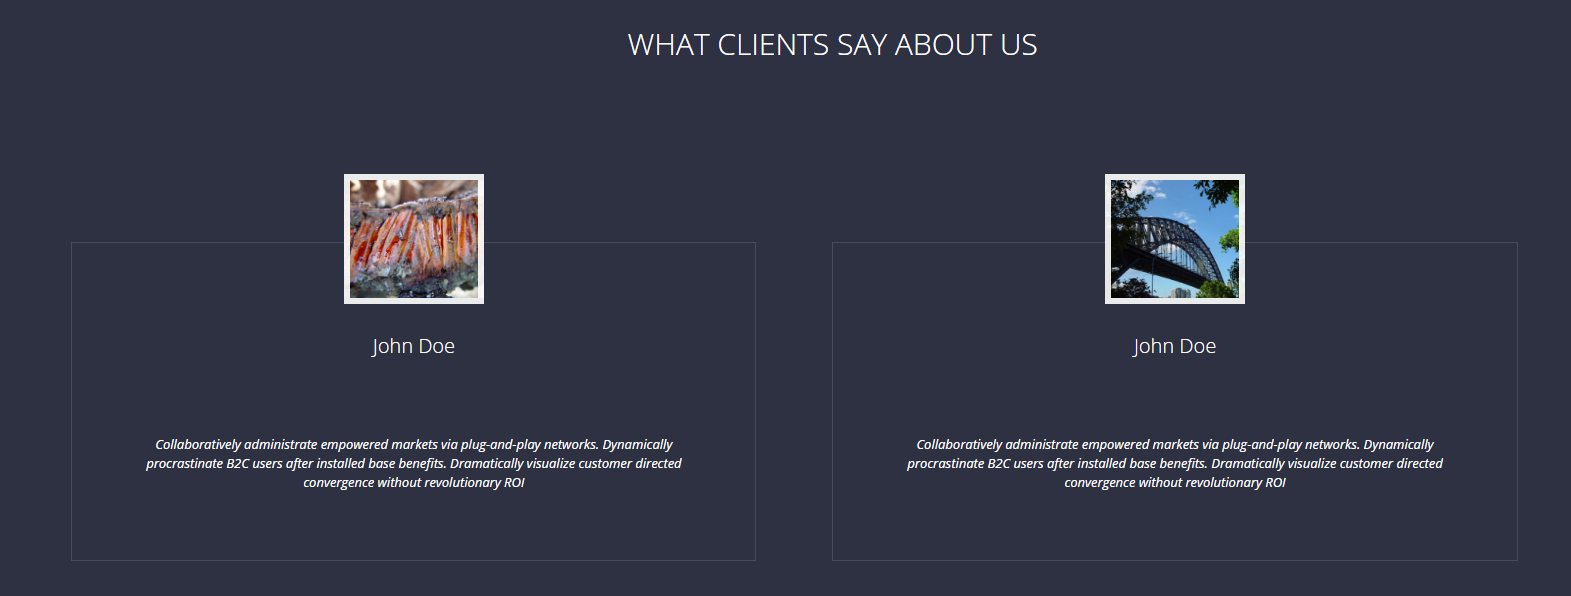 H3 Text, Two Client Image, Client Name and Testimonials